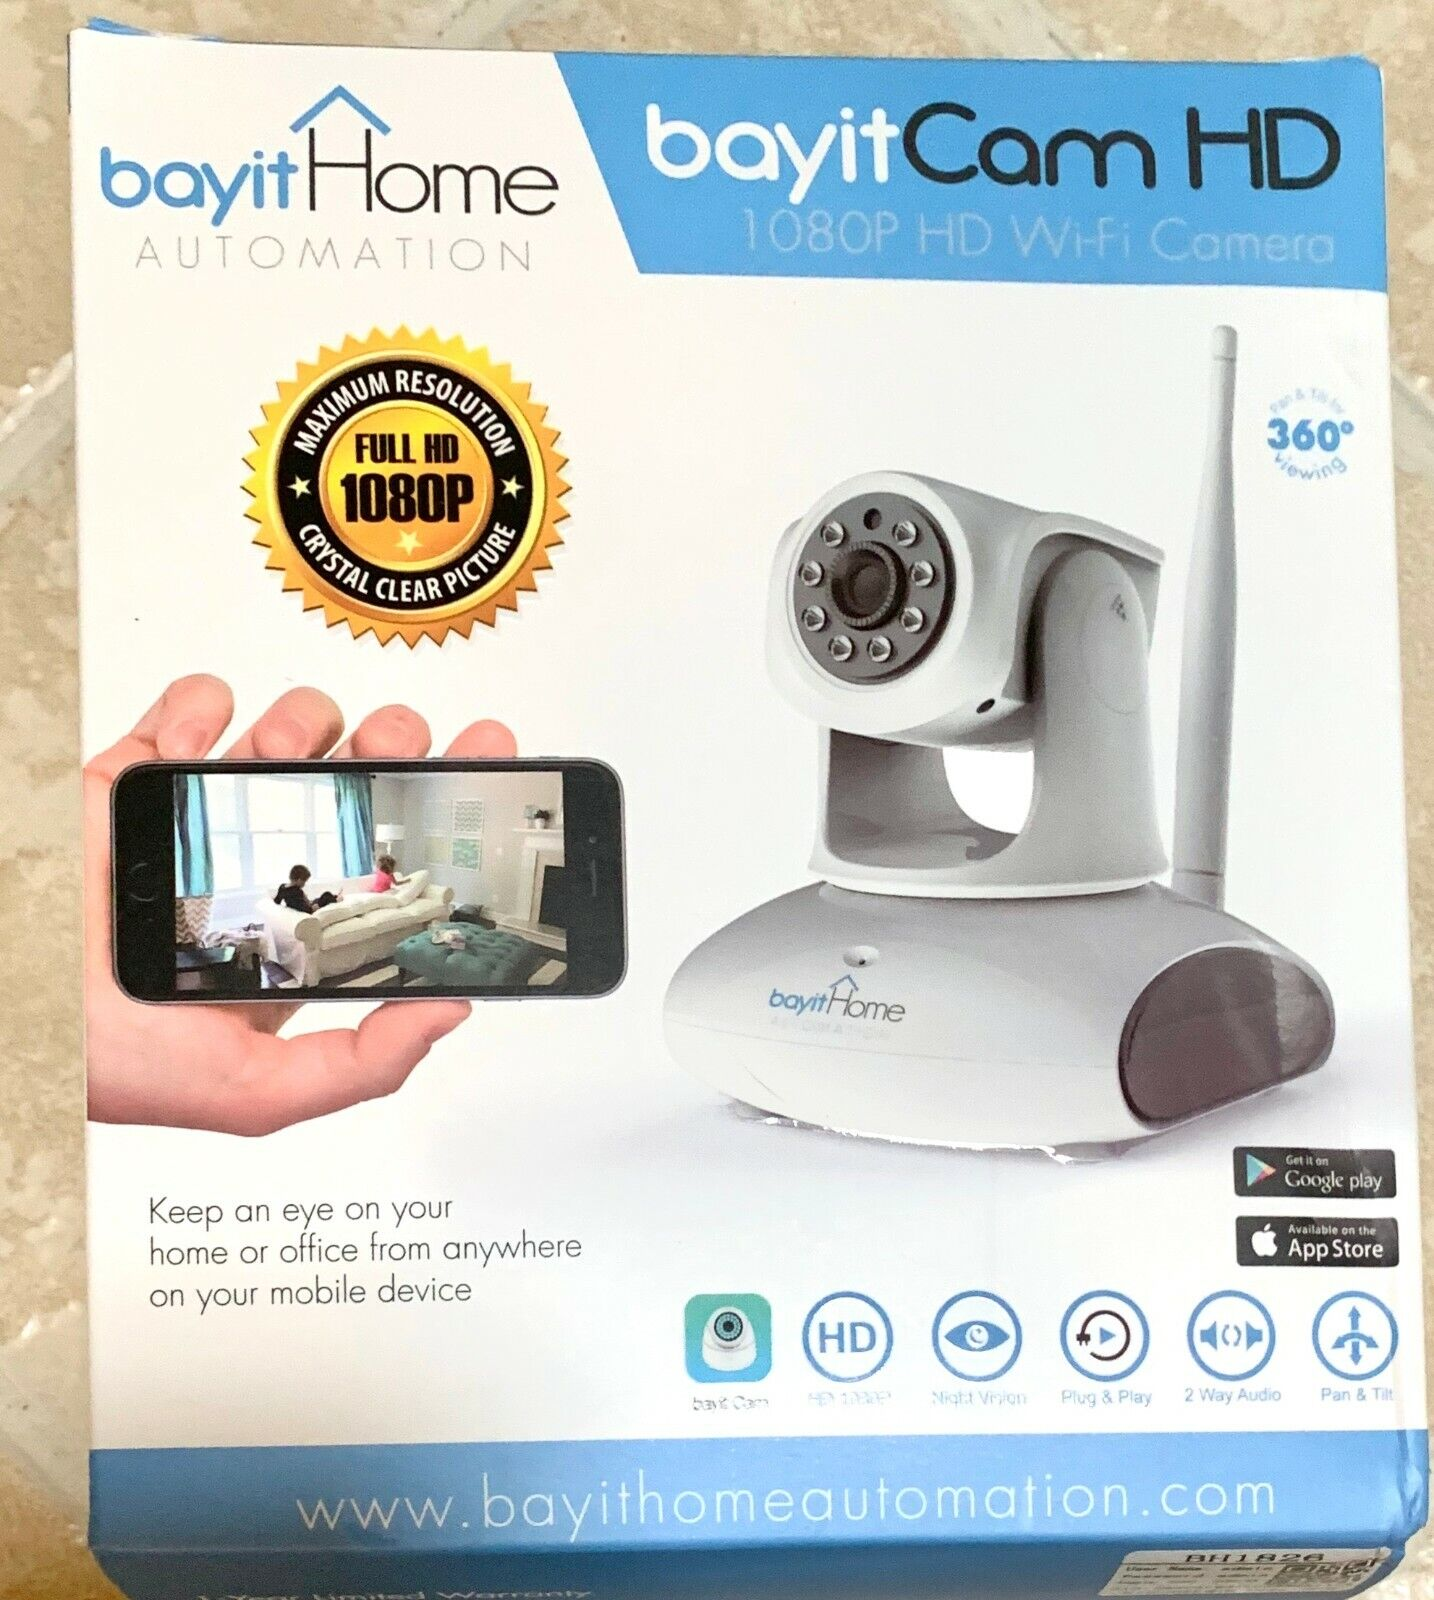 Bayit Cam Pro Full HD1080P WiFi/IP Camera Wireless Pan/Tilt